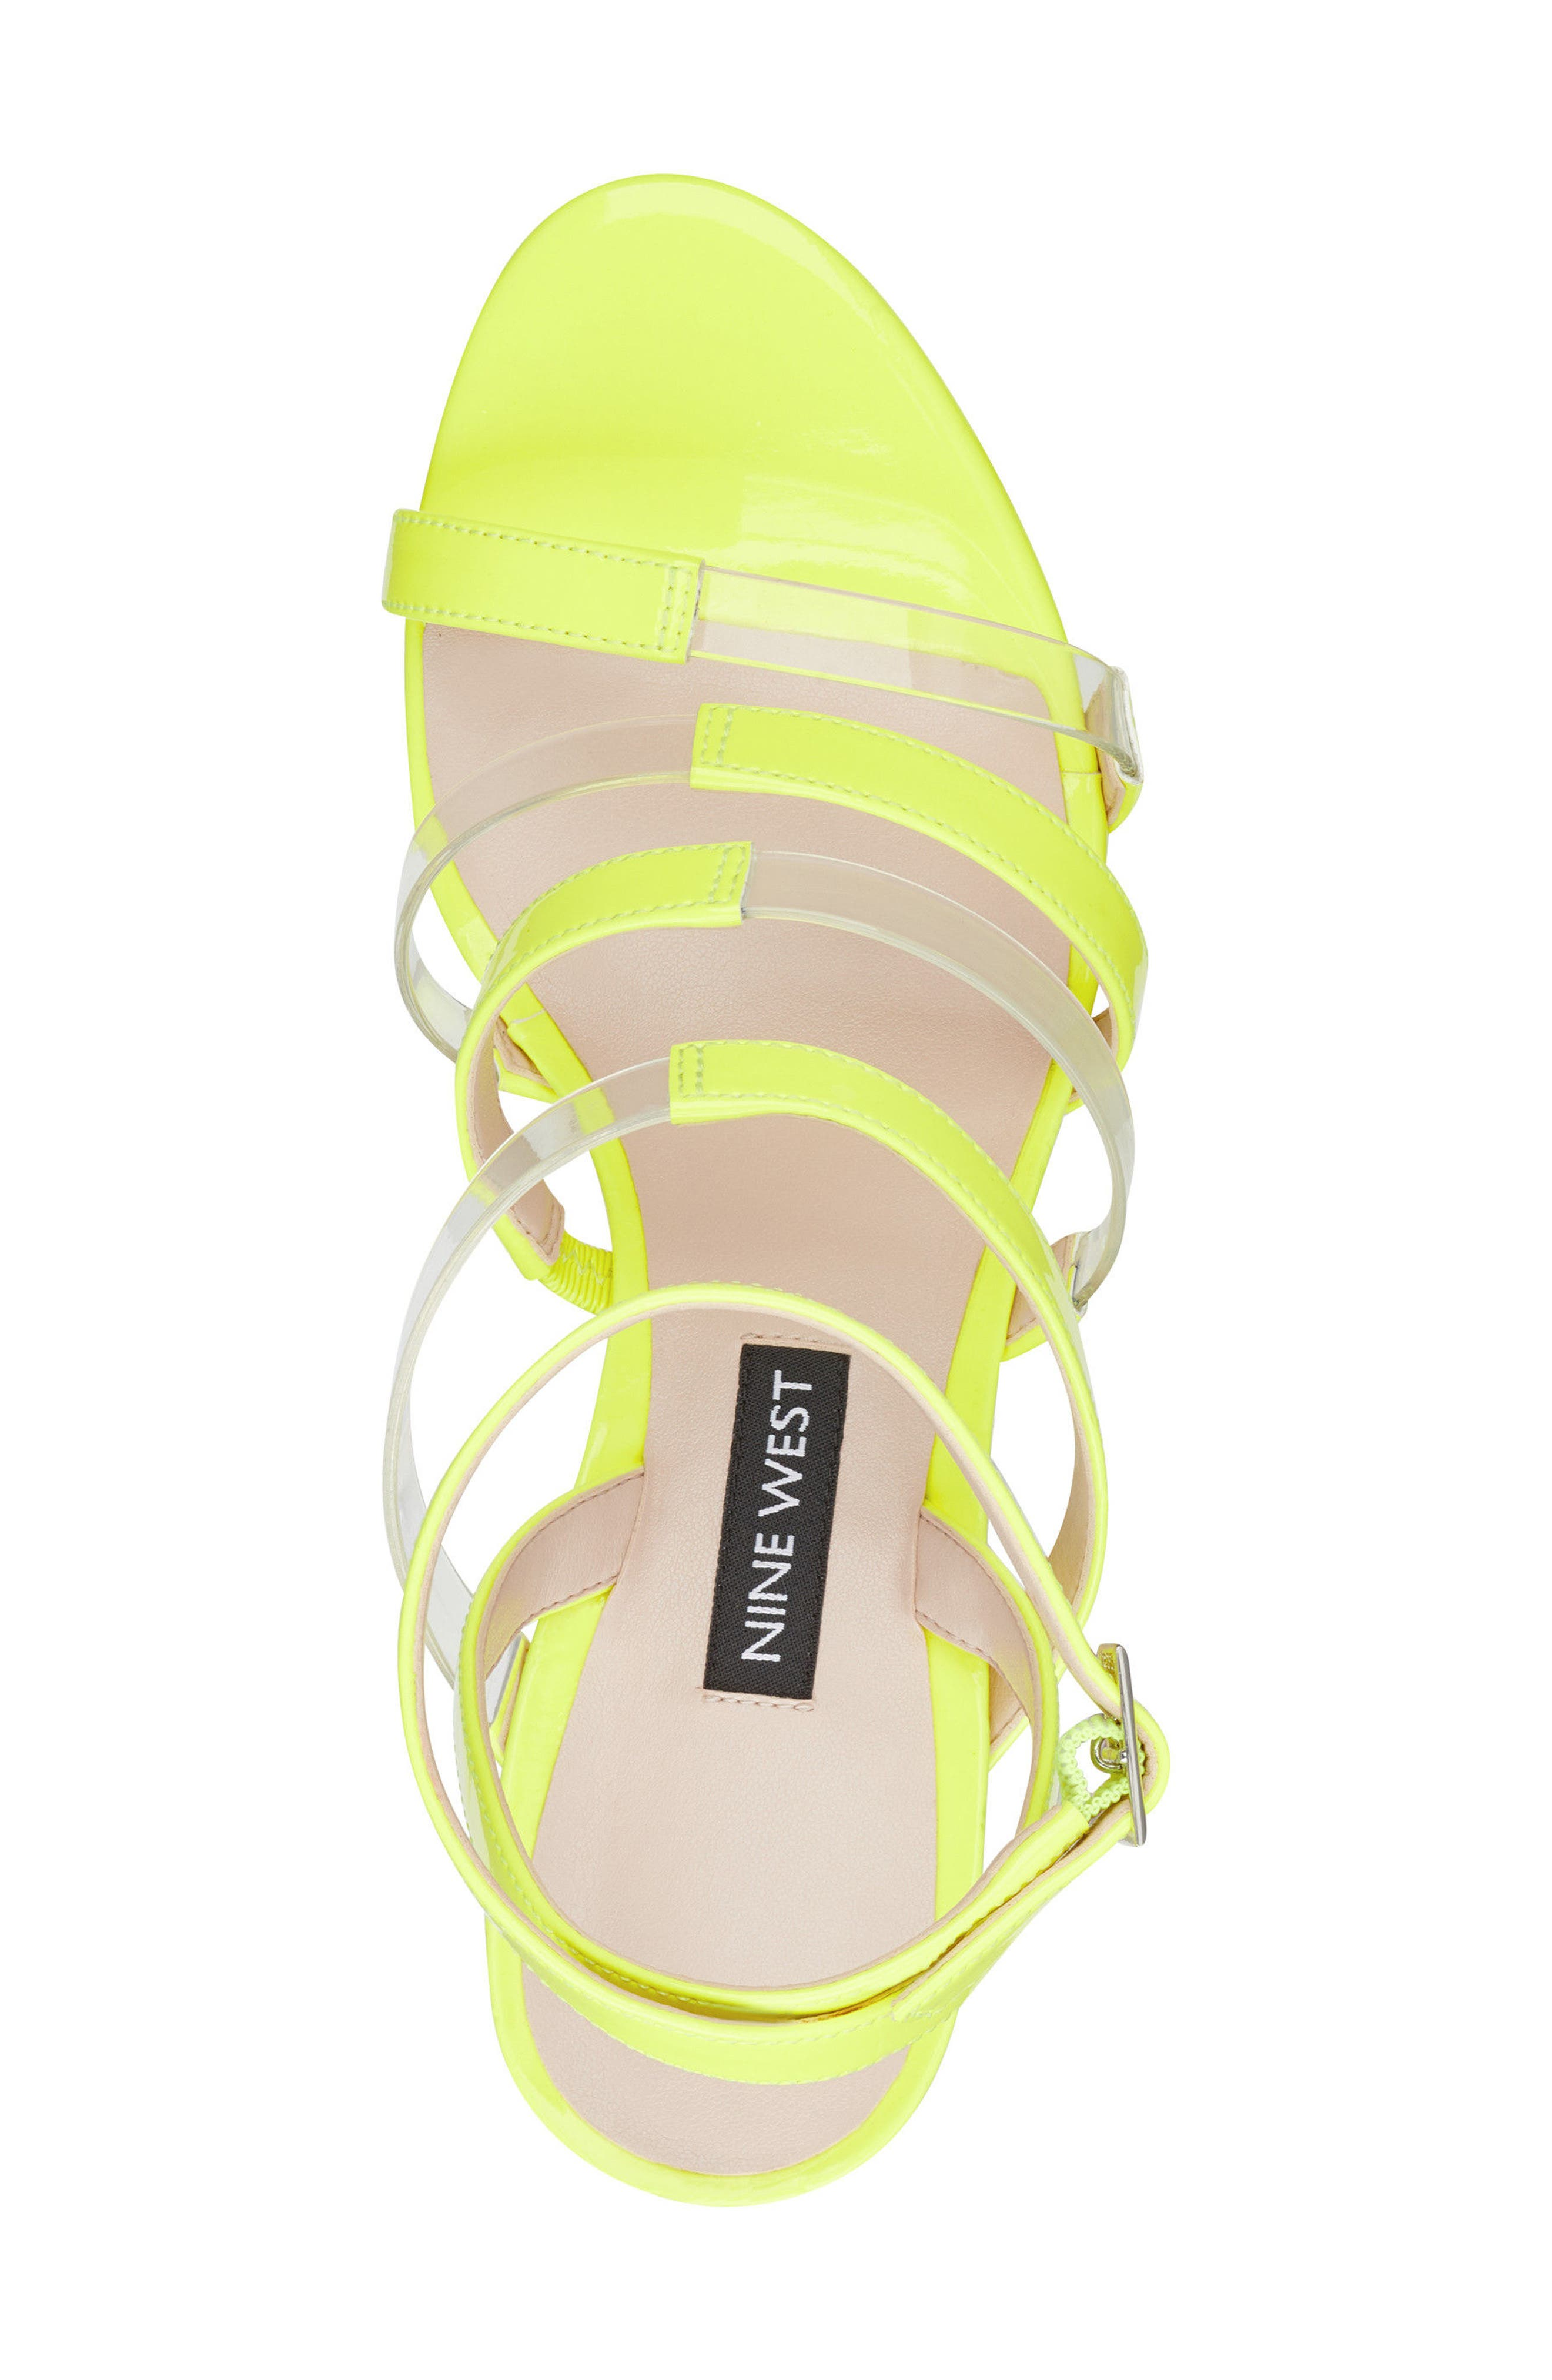 Fazzani Cage Sandal,                             Alternate thumbnail 5, color,                             Clear/ Yellow Faux Leather